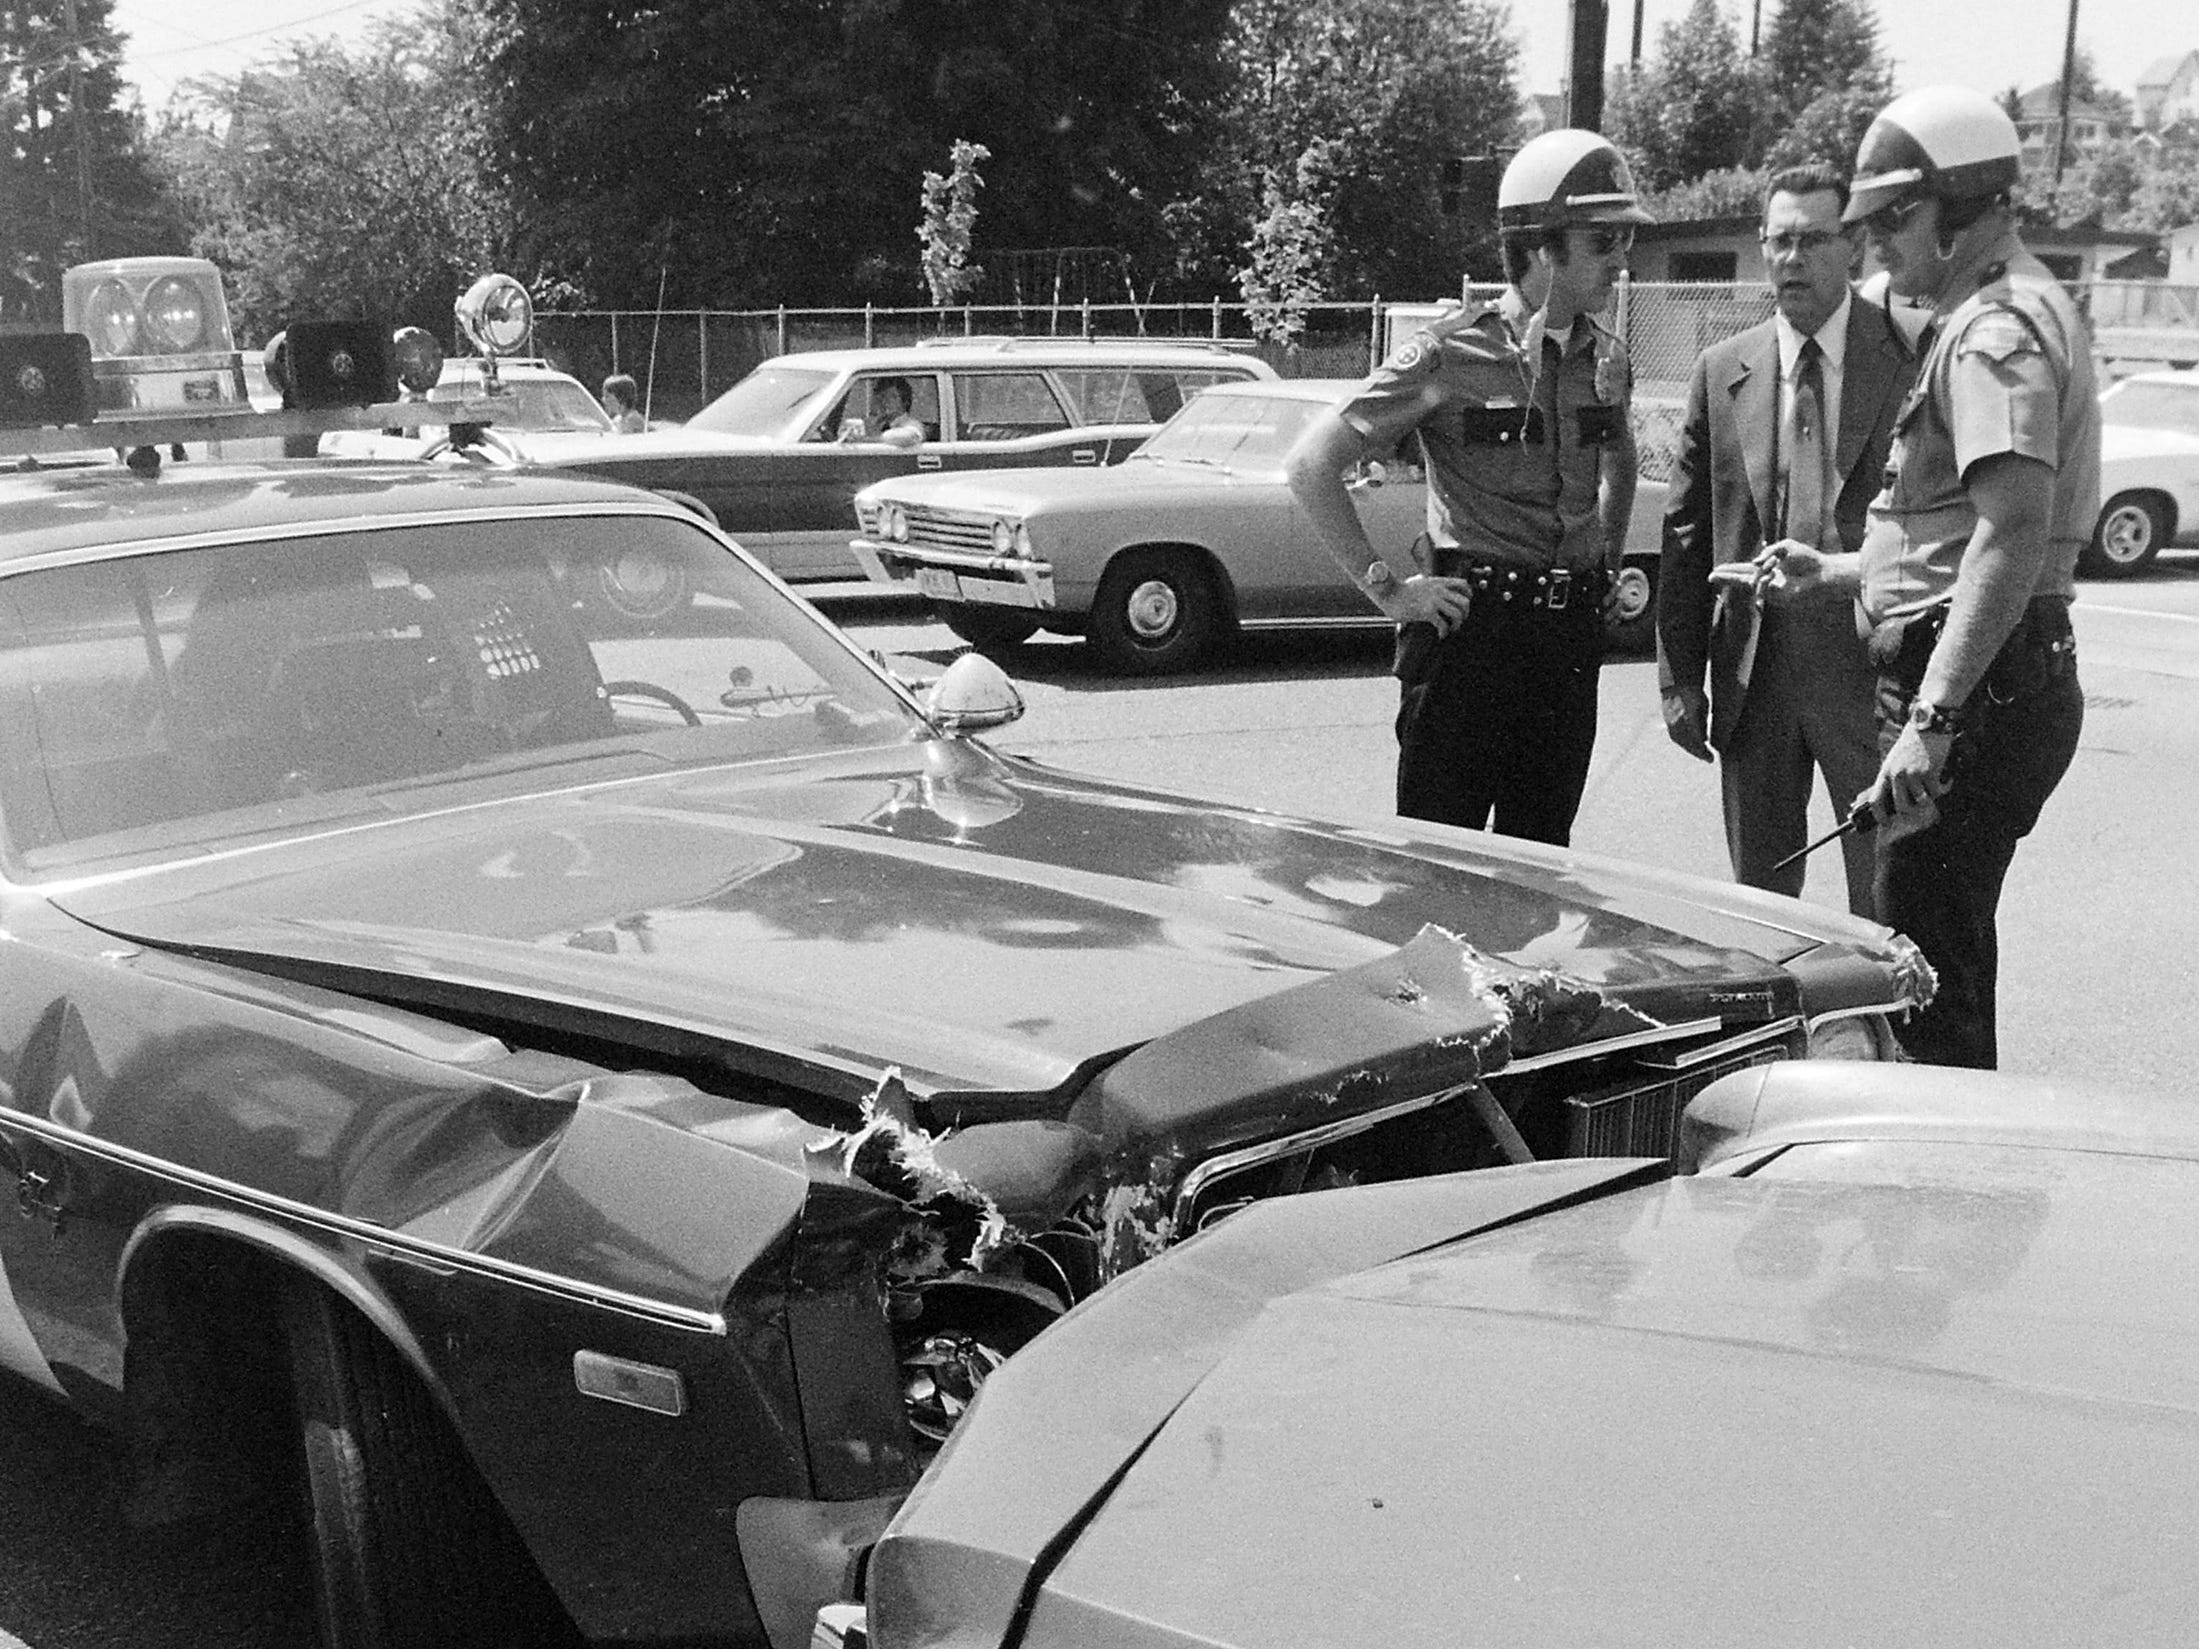 07/23/77